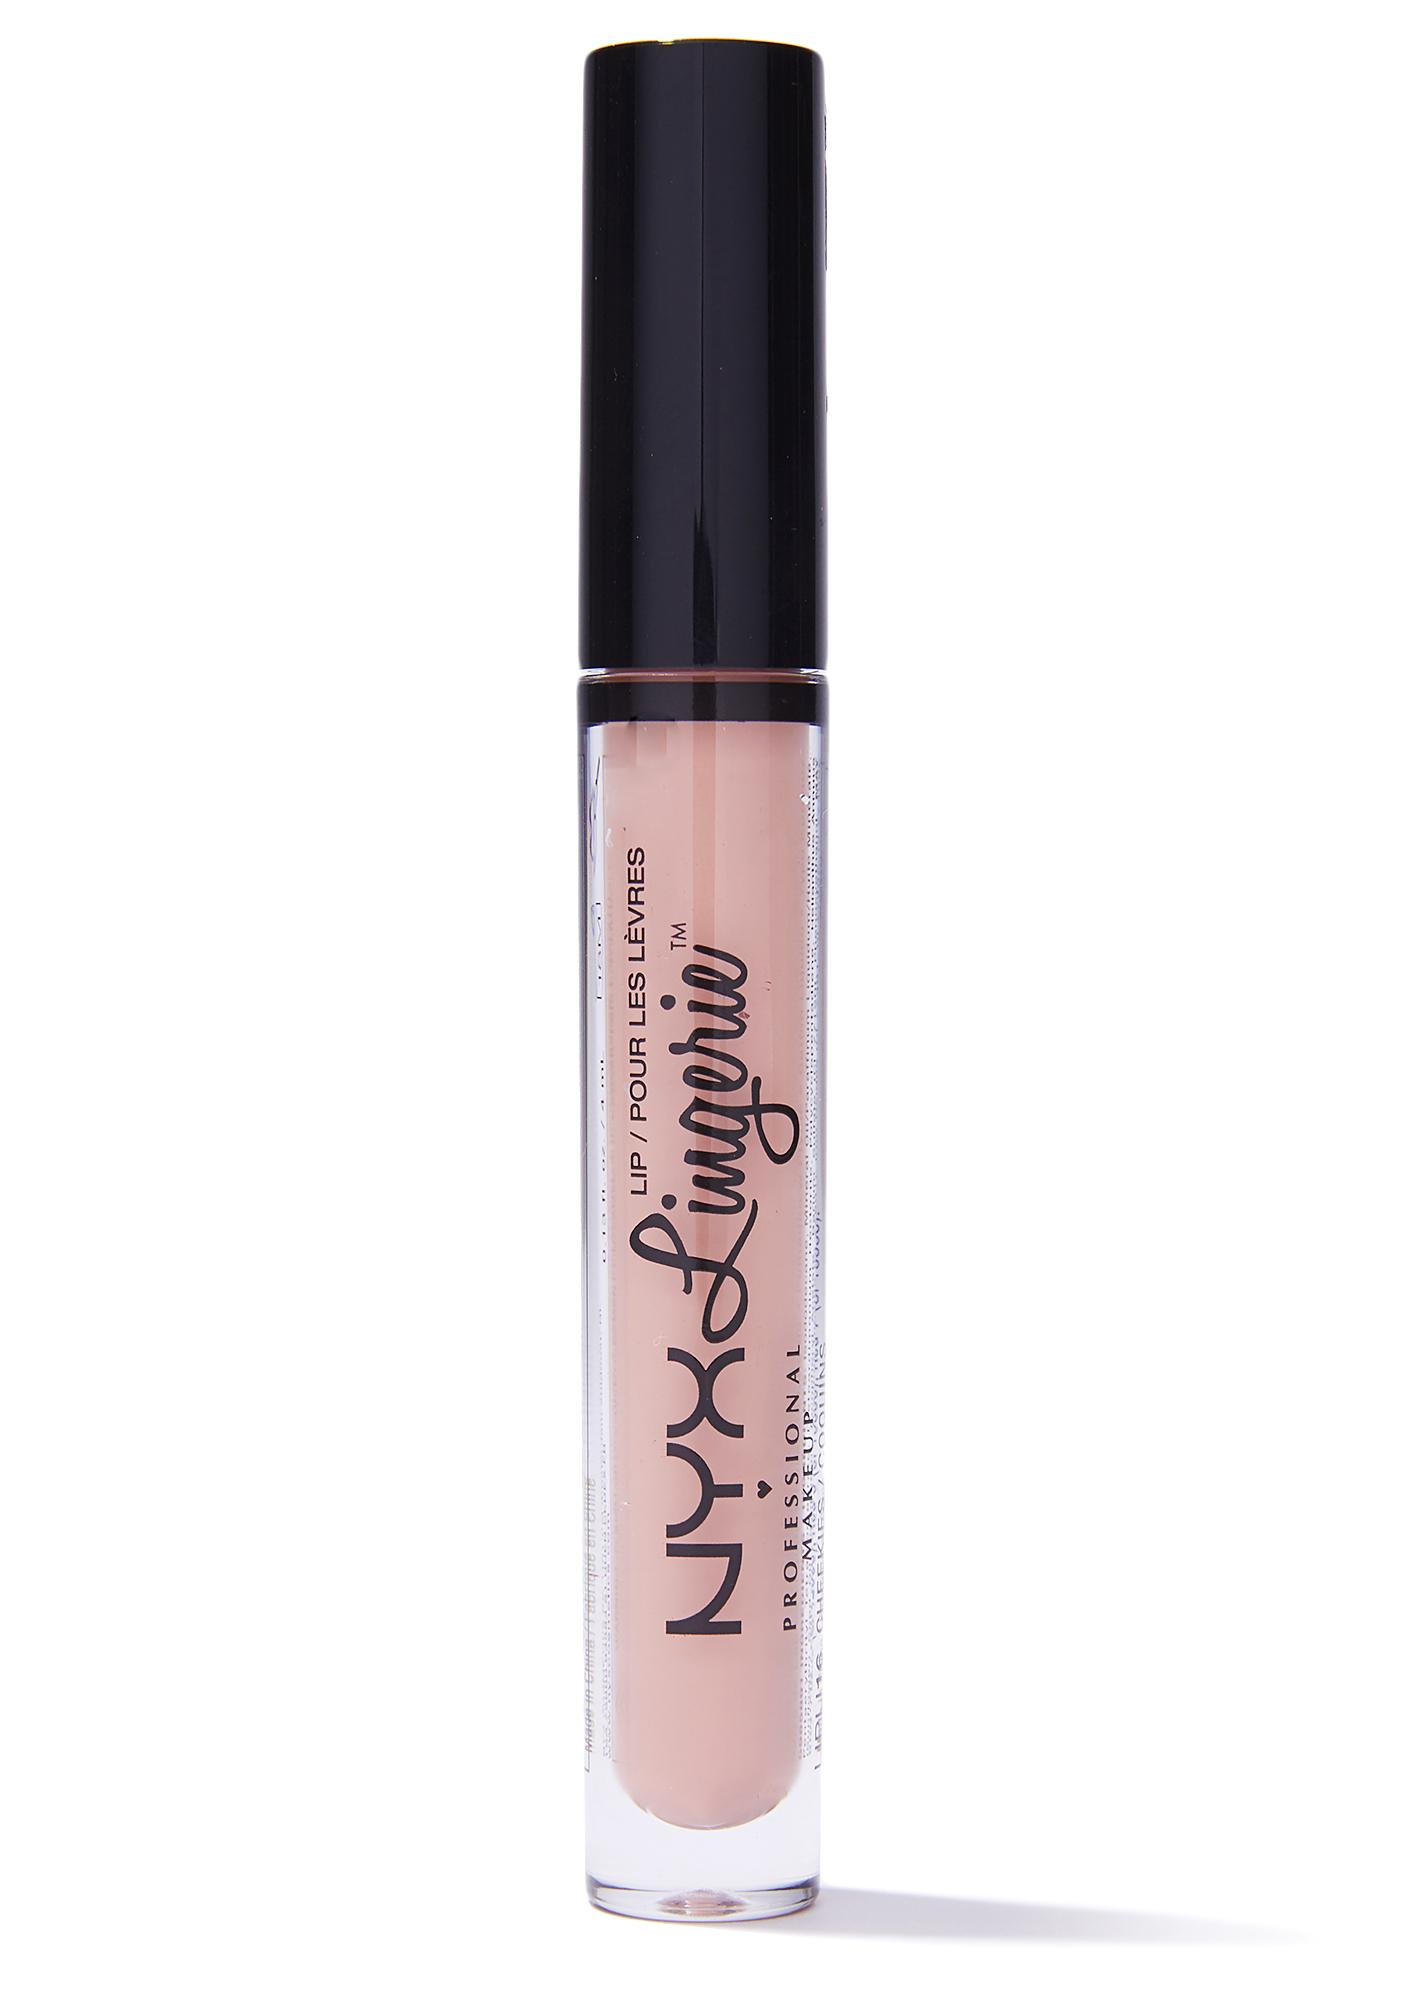 NYX Cheekies Lip Lingerie